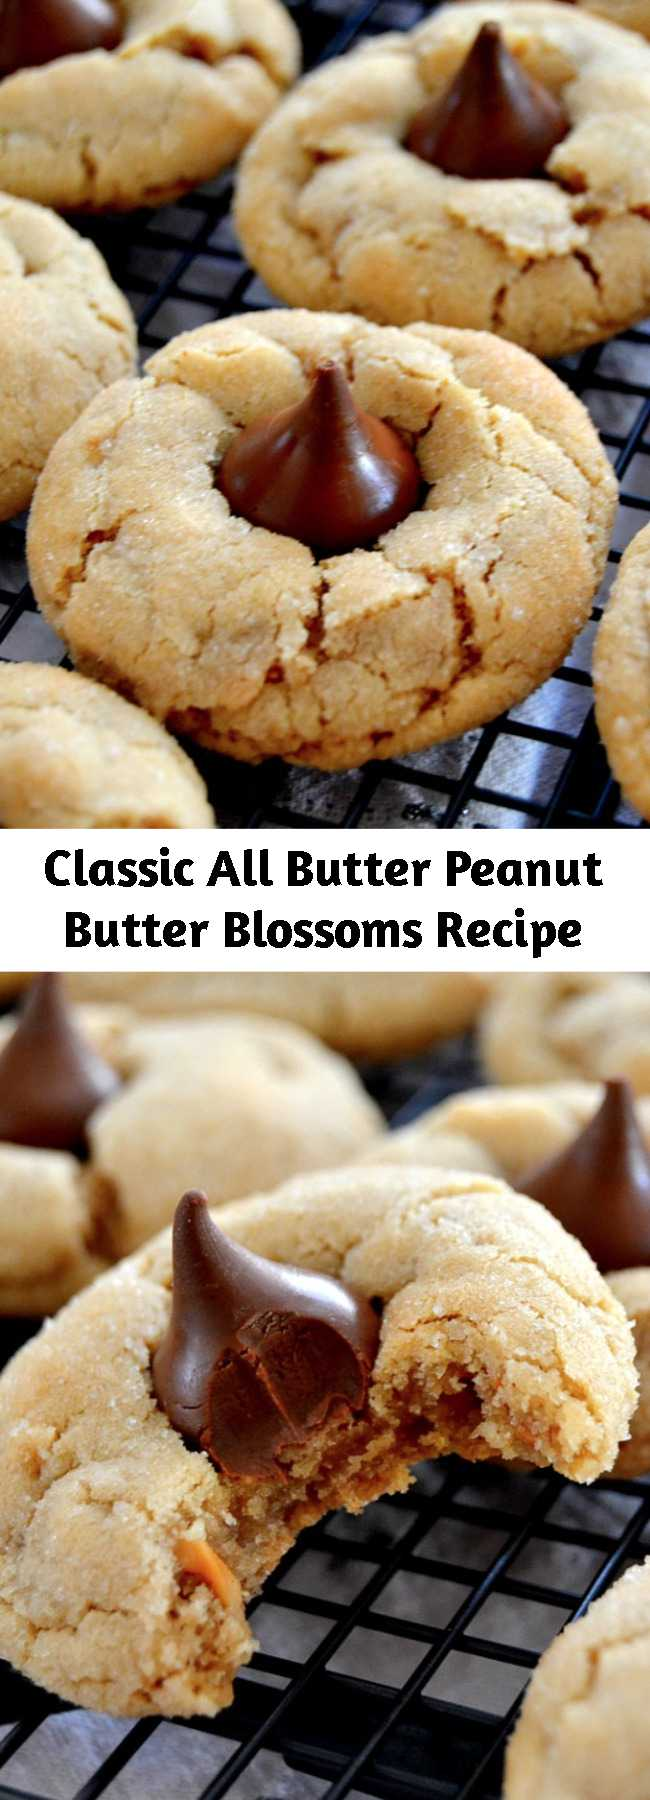 Classic All Butter Peanut Butter Blossoms Recipe - These Classic All-Butter Peanut Butter Blossoms are perfection! Soft, chewy and studded with a solid milk chocolate candy for that classic cookie everyone loves. This dough is so foolproof and doesn't require chilling!